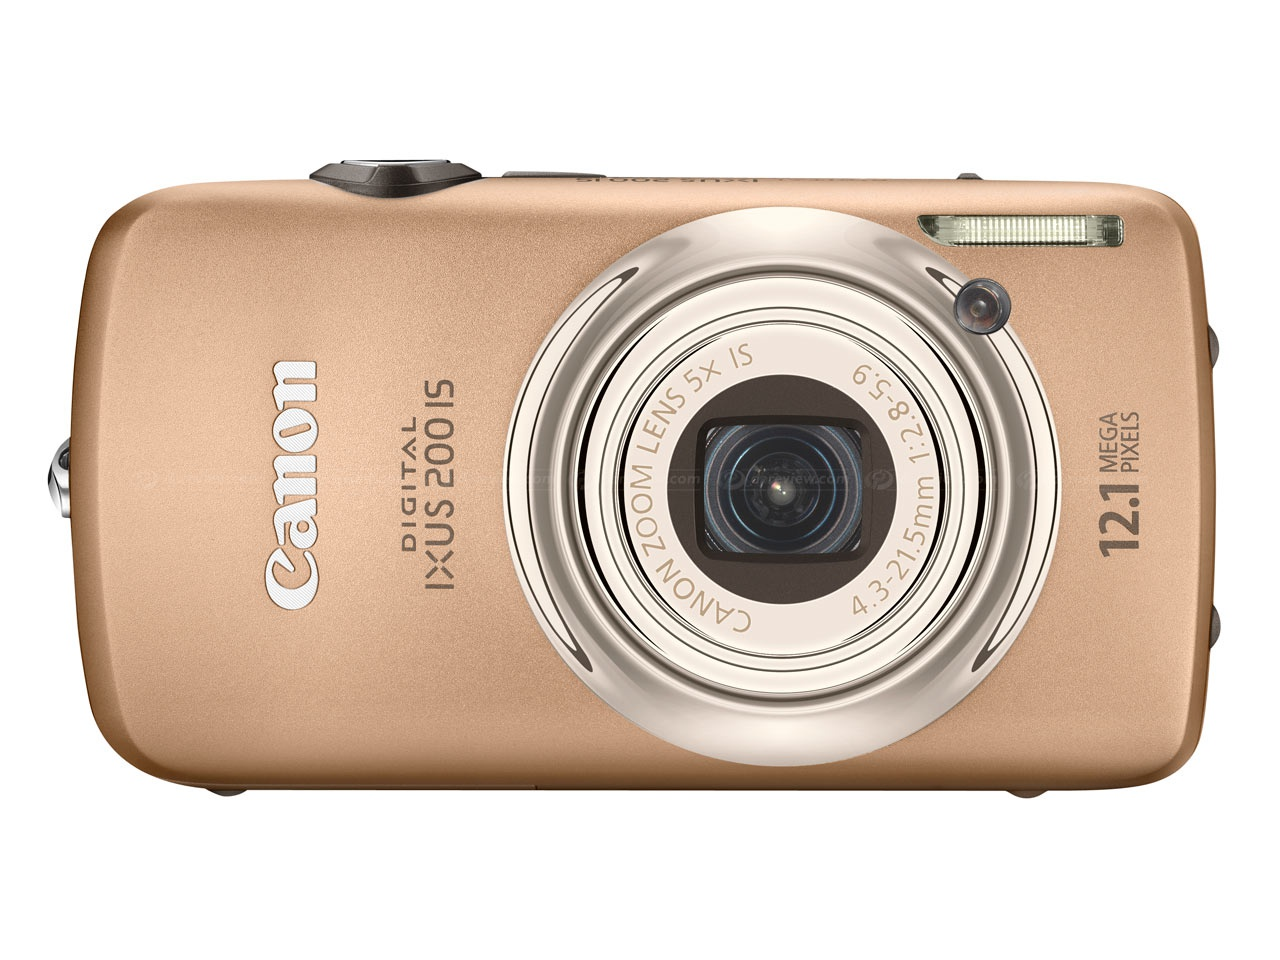 canon ixus 200 is goud specificaties tweakers canon ixus 200 is manual pdf canon ixus 200 is manual